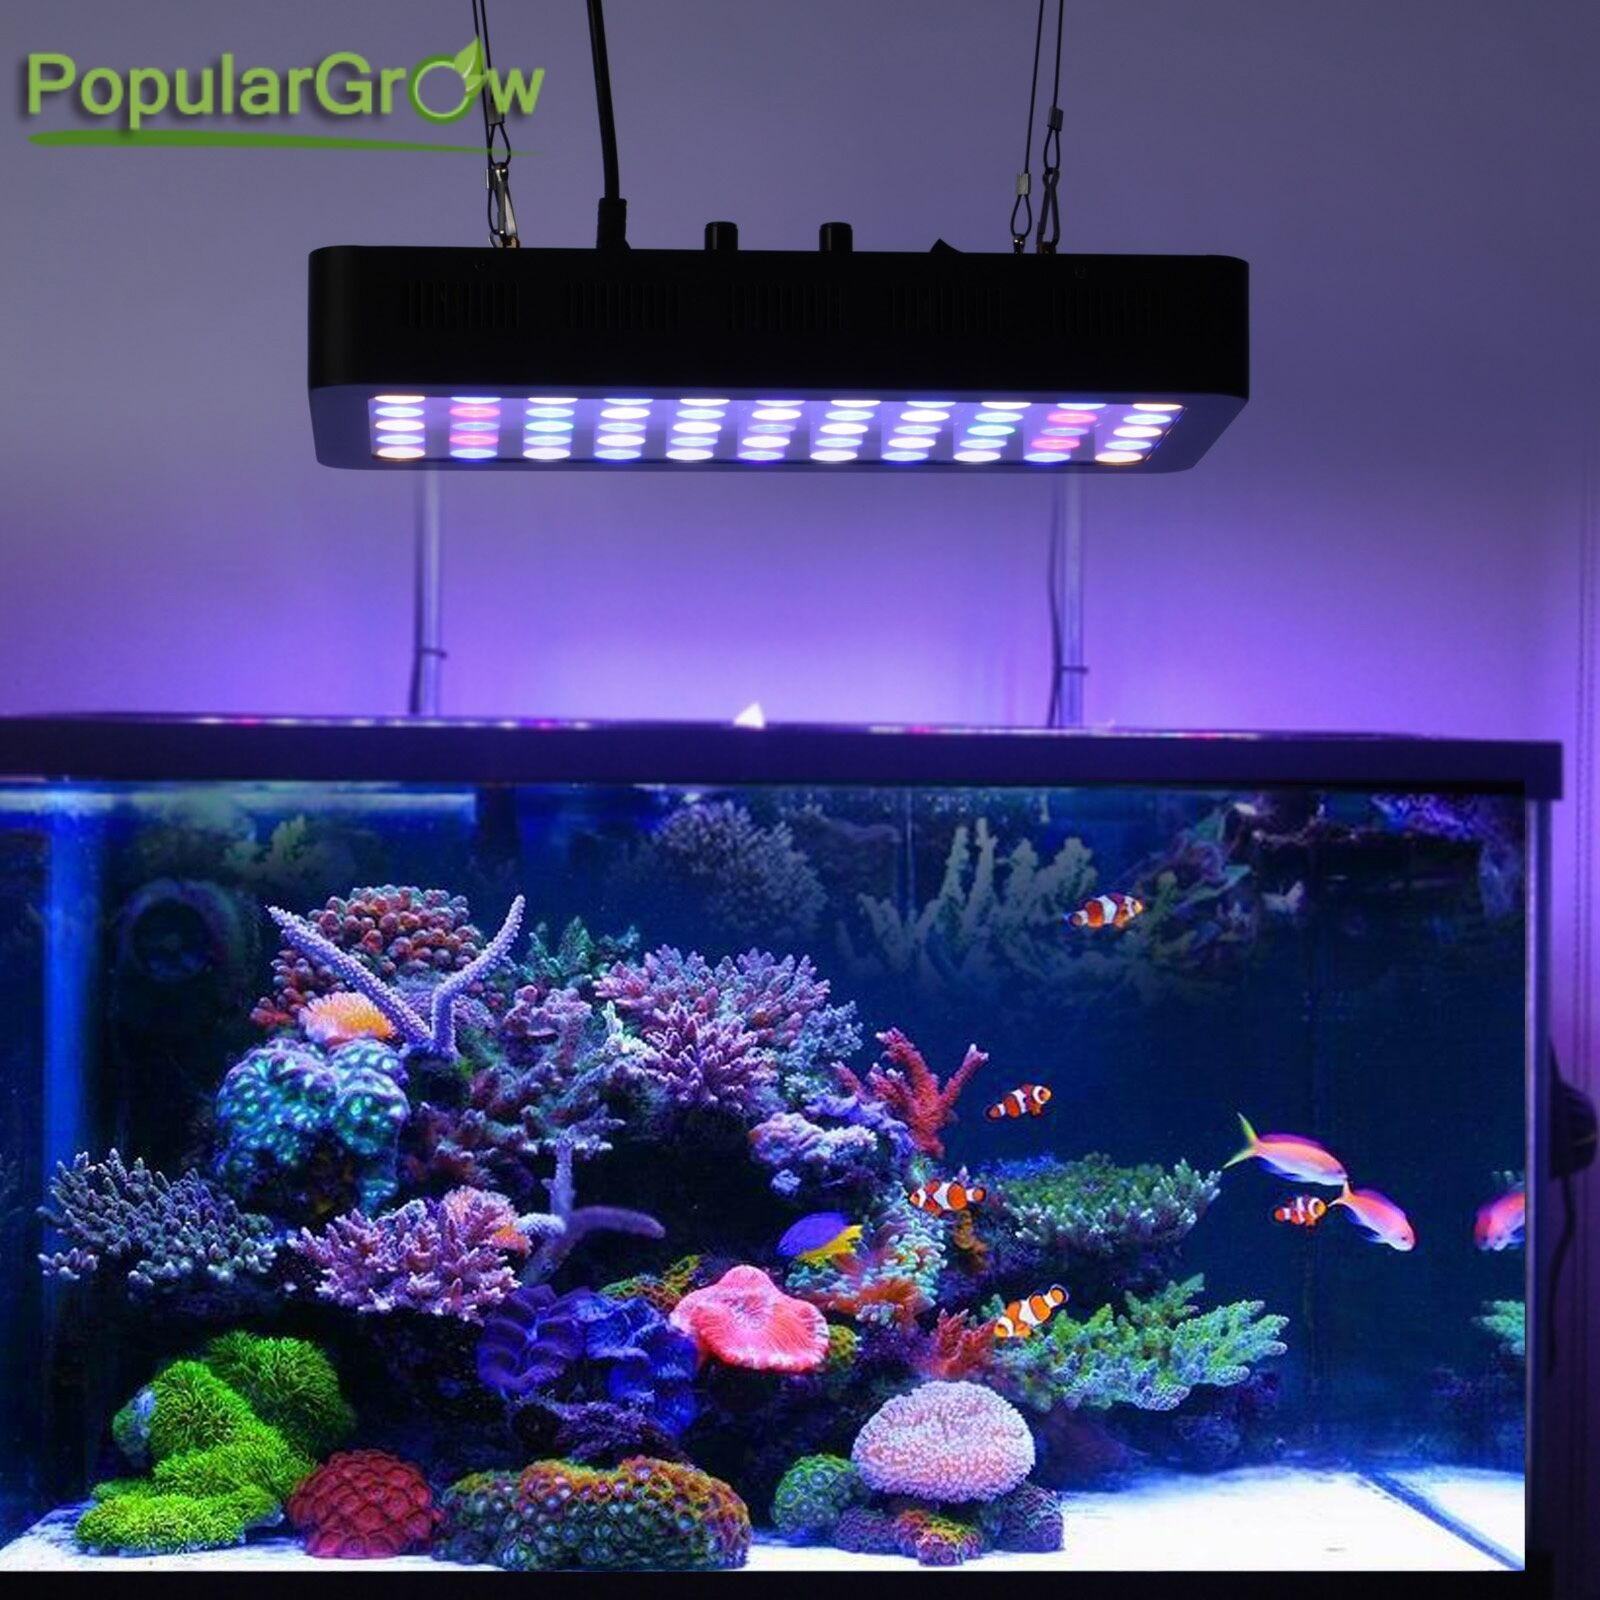 populargrow 165w led aquarium beleuchtung dimmable f r meer fisch riff korallen eur 92 56. Black Bedroom Furniture Sets. Home Design Ideas